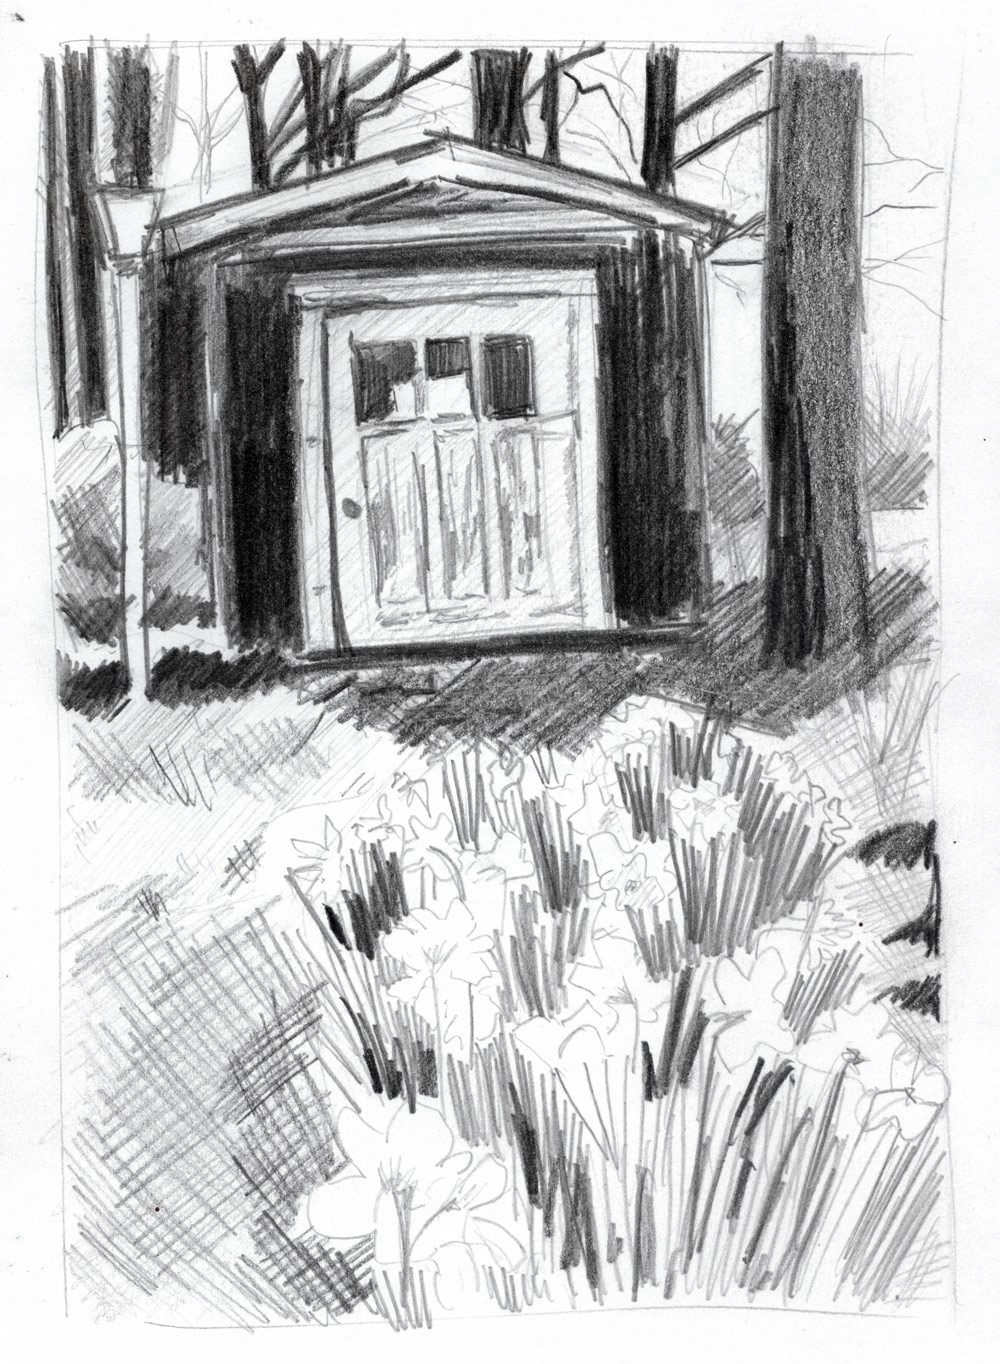 StoneShed-Pencil-Sketch-1000px.jpg